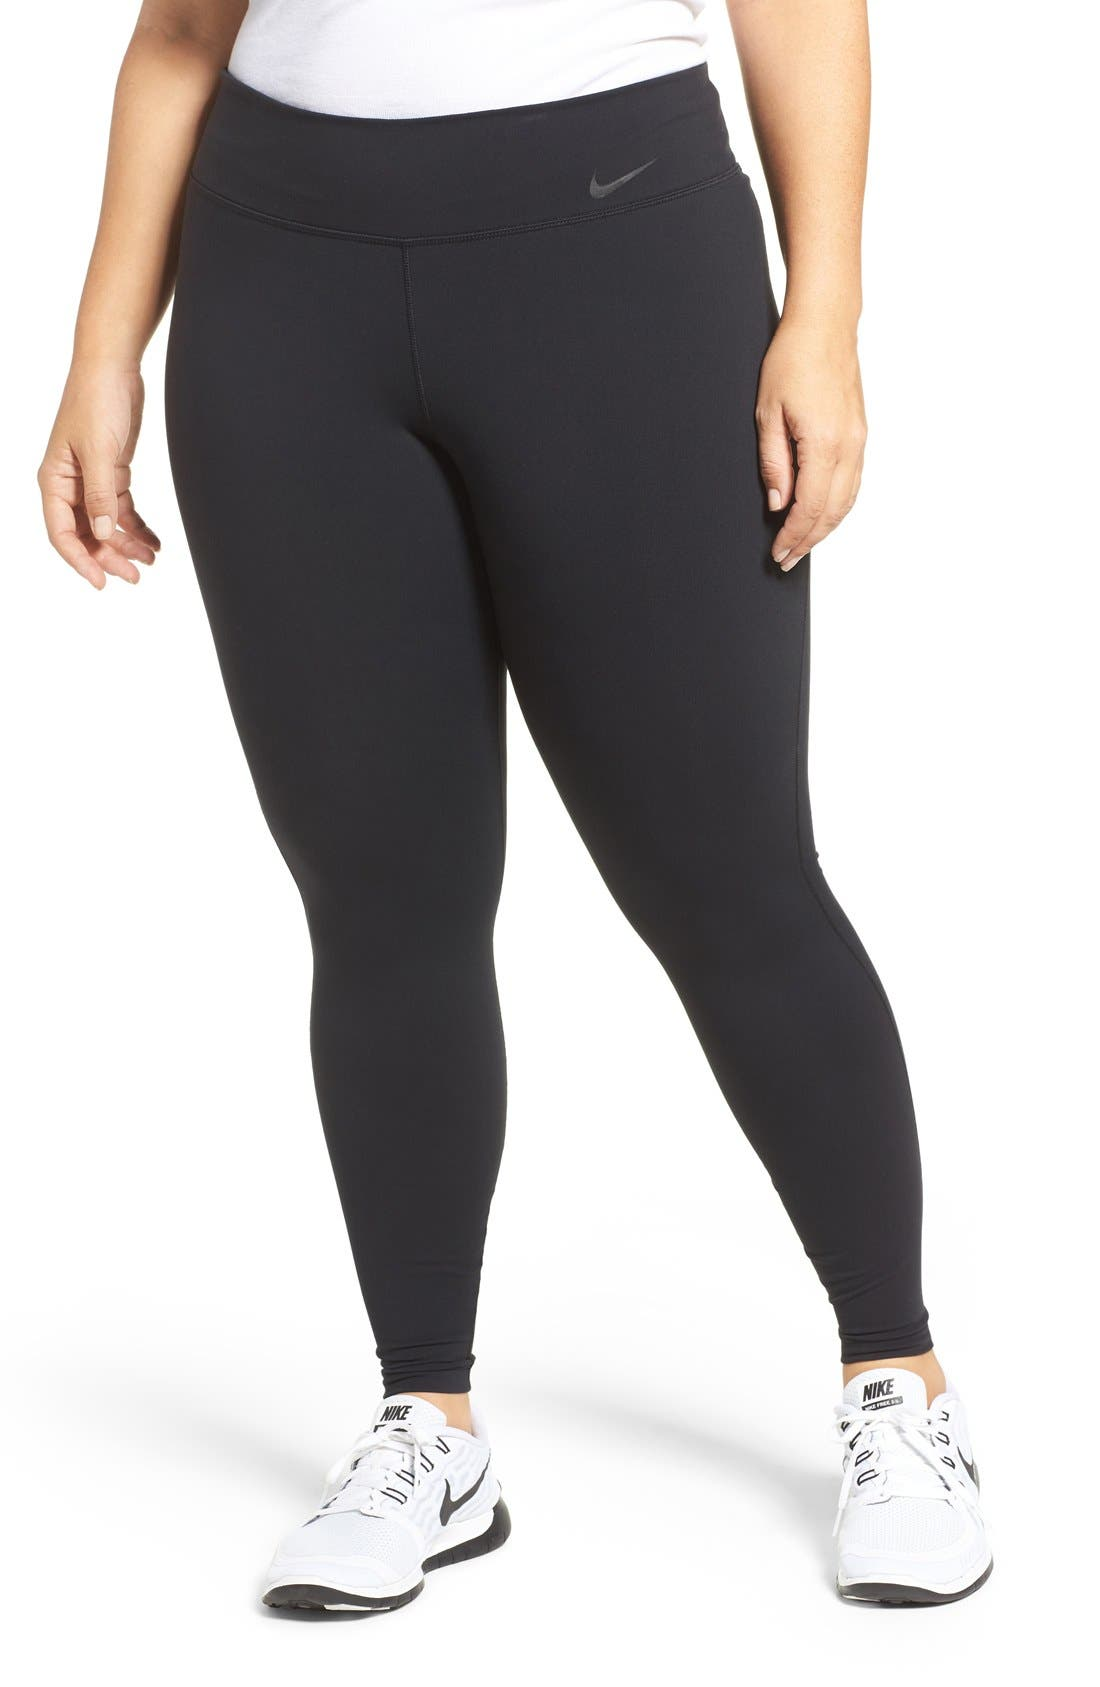 Nike Power Legendary Training Tights (Plus Size)